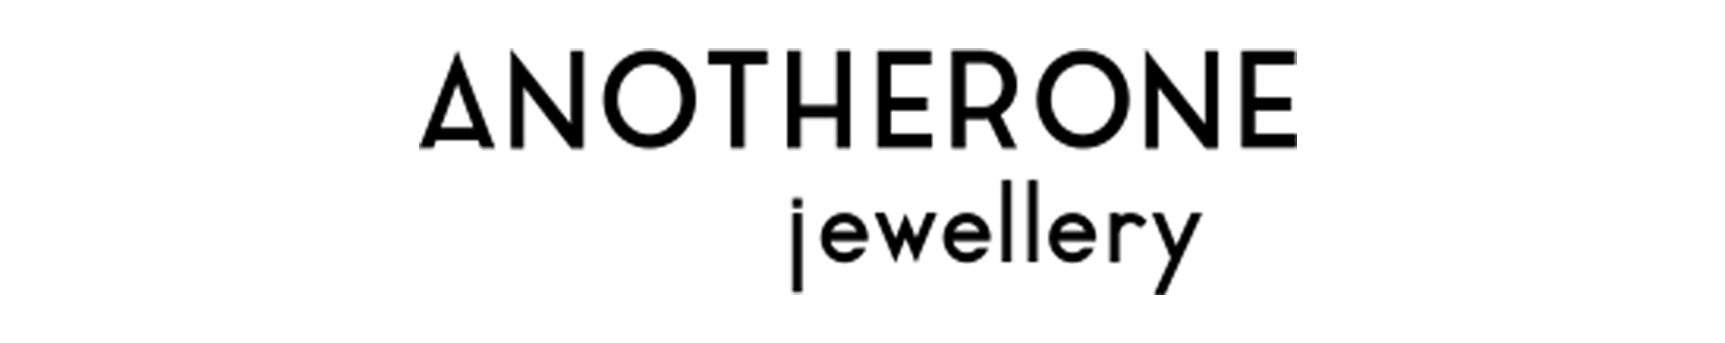 Anotherone Jewellery